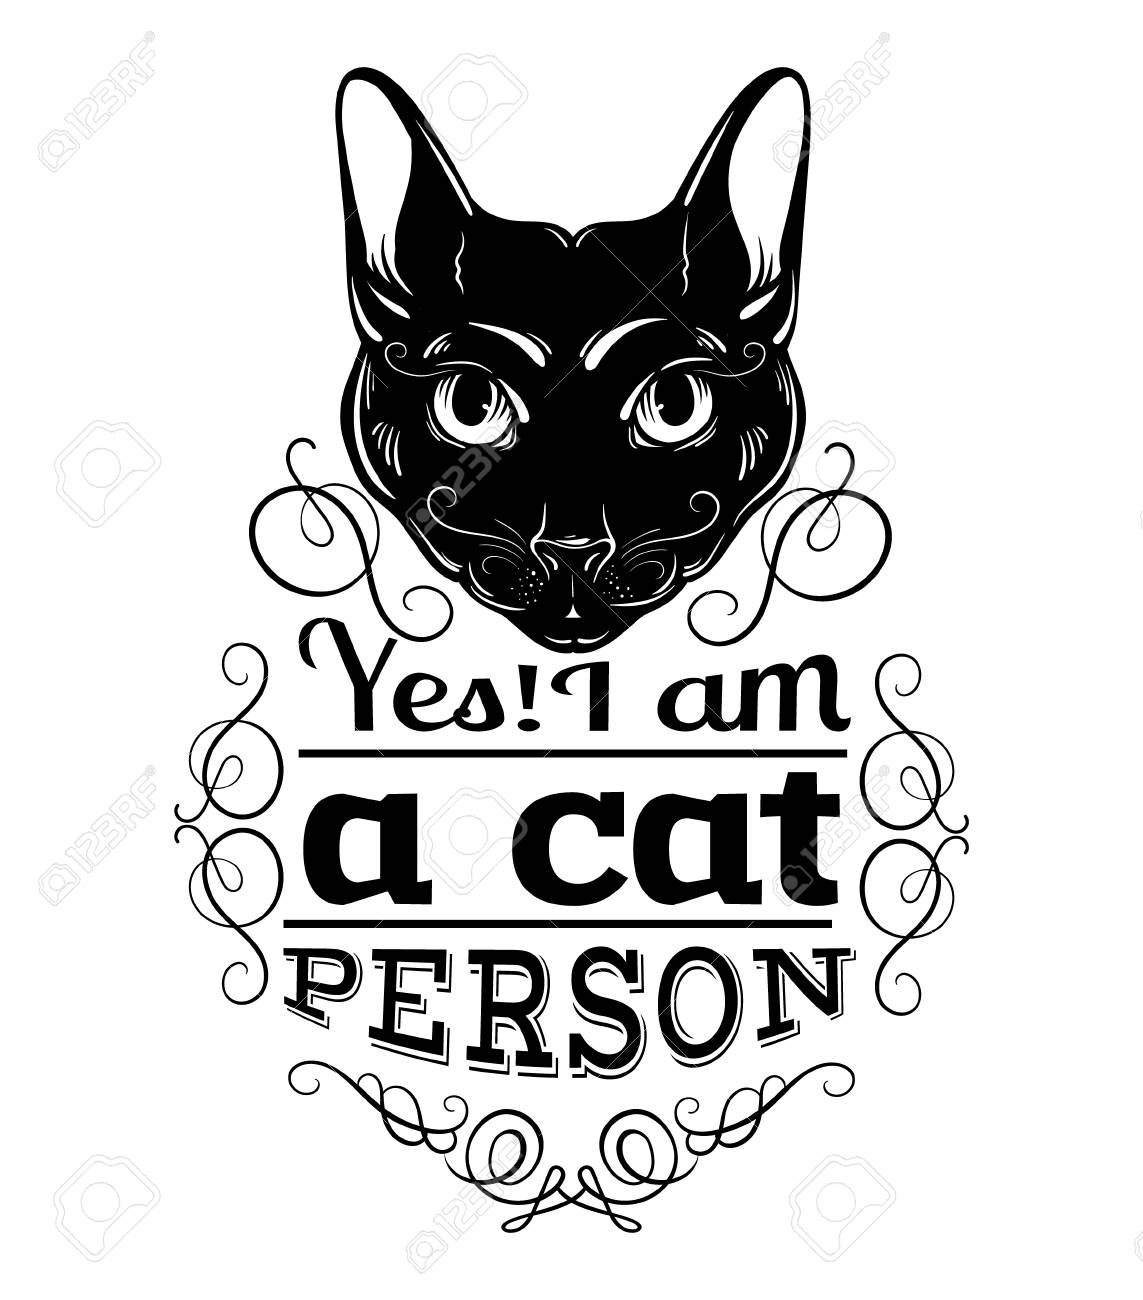 Cat Stock Quote Yes I Am A Cat Personquote Typographical Backgroundvector